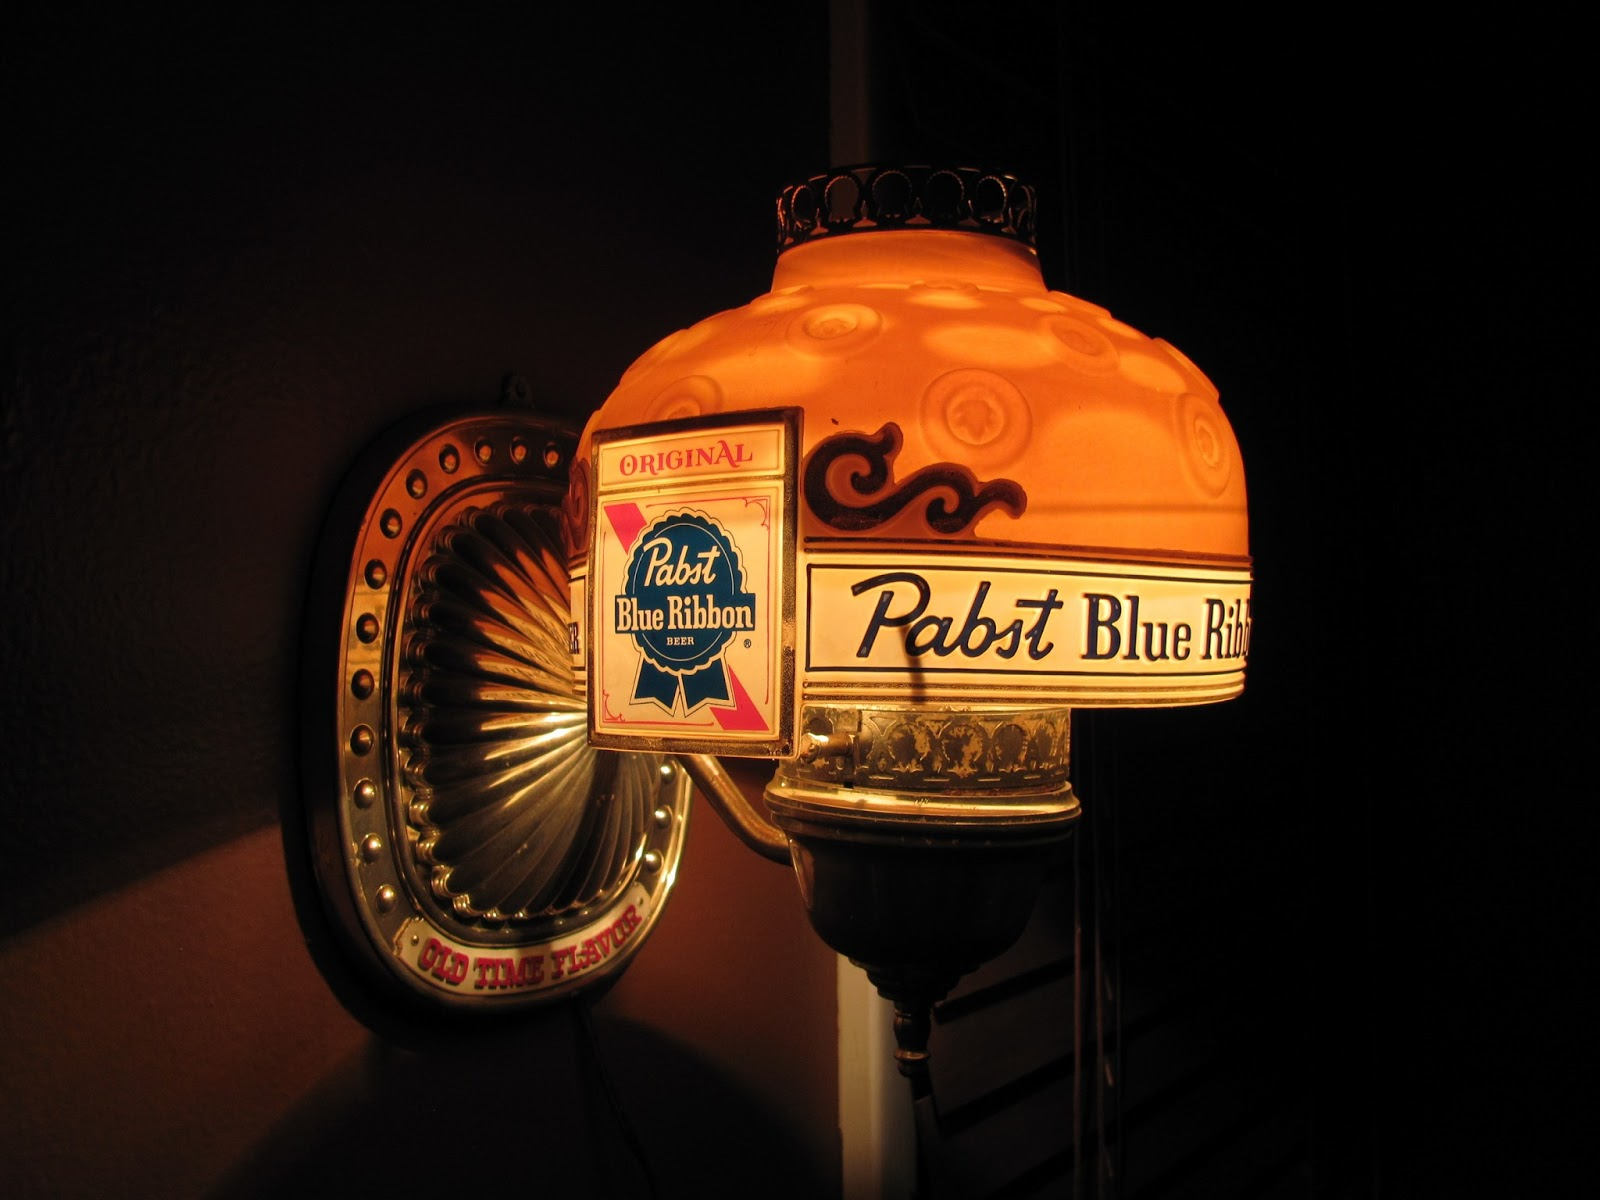 PBR wall light on display in action in a dark room